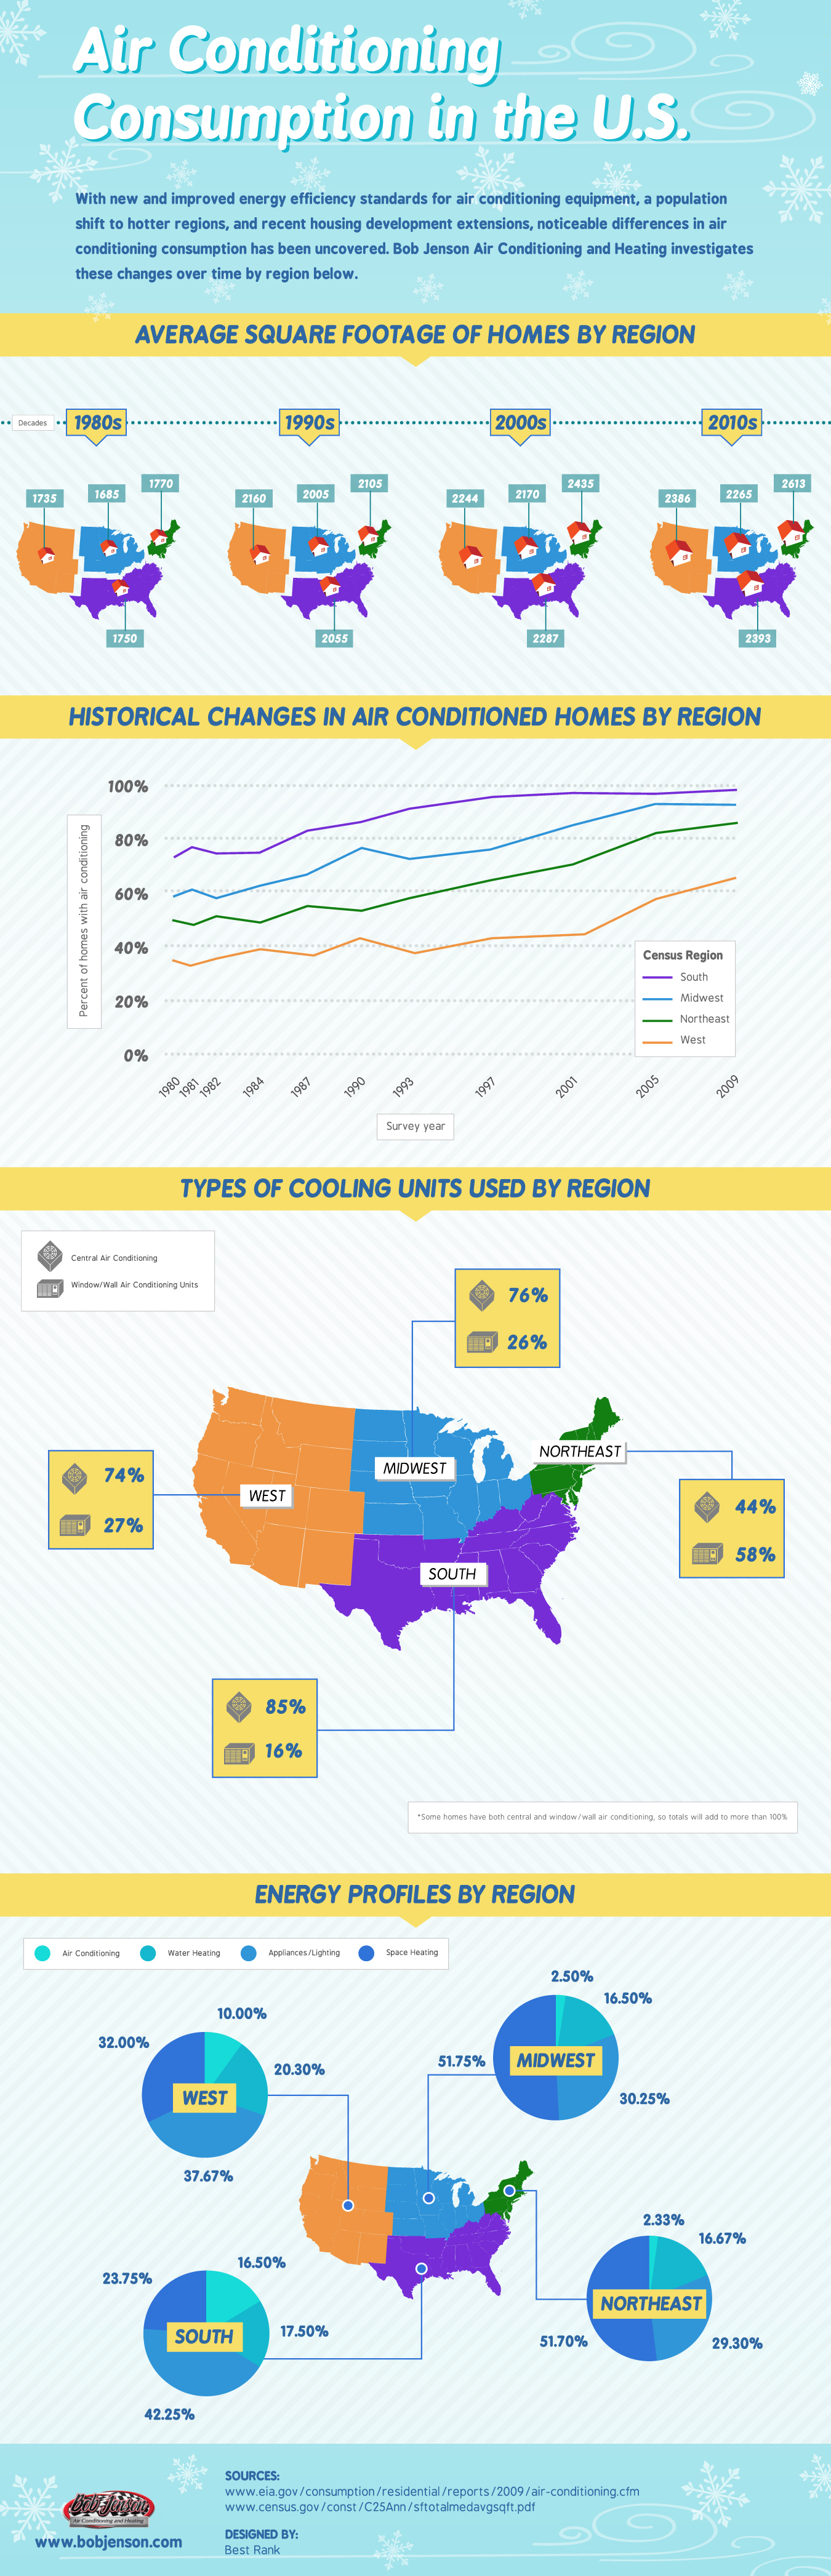 Air Conditioning Consumption In The U.S. [INFOGRAPHIC]